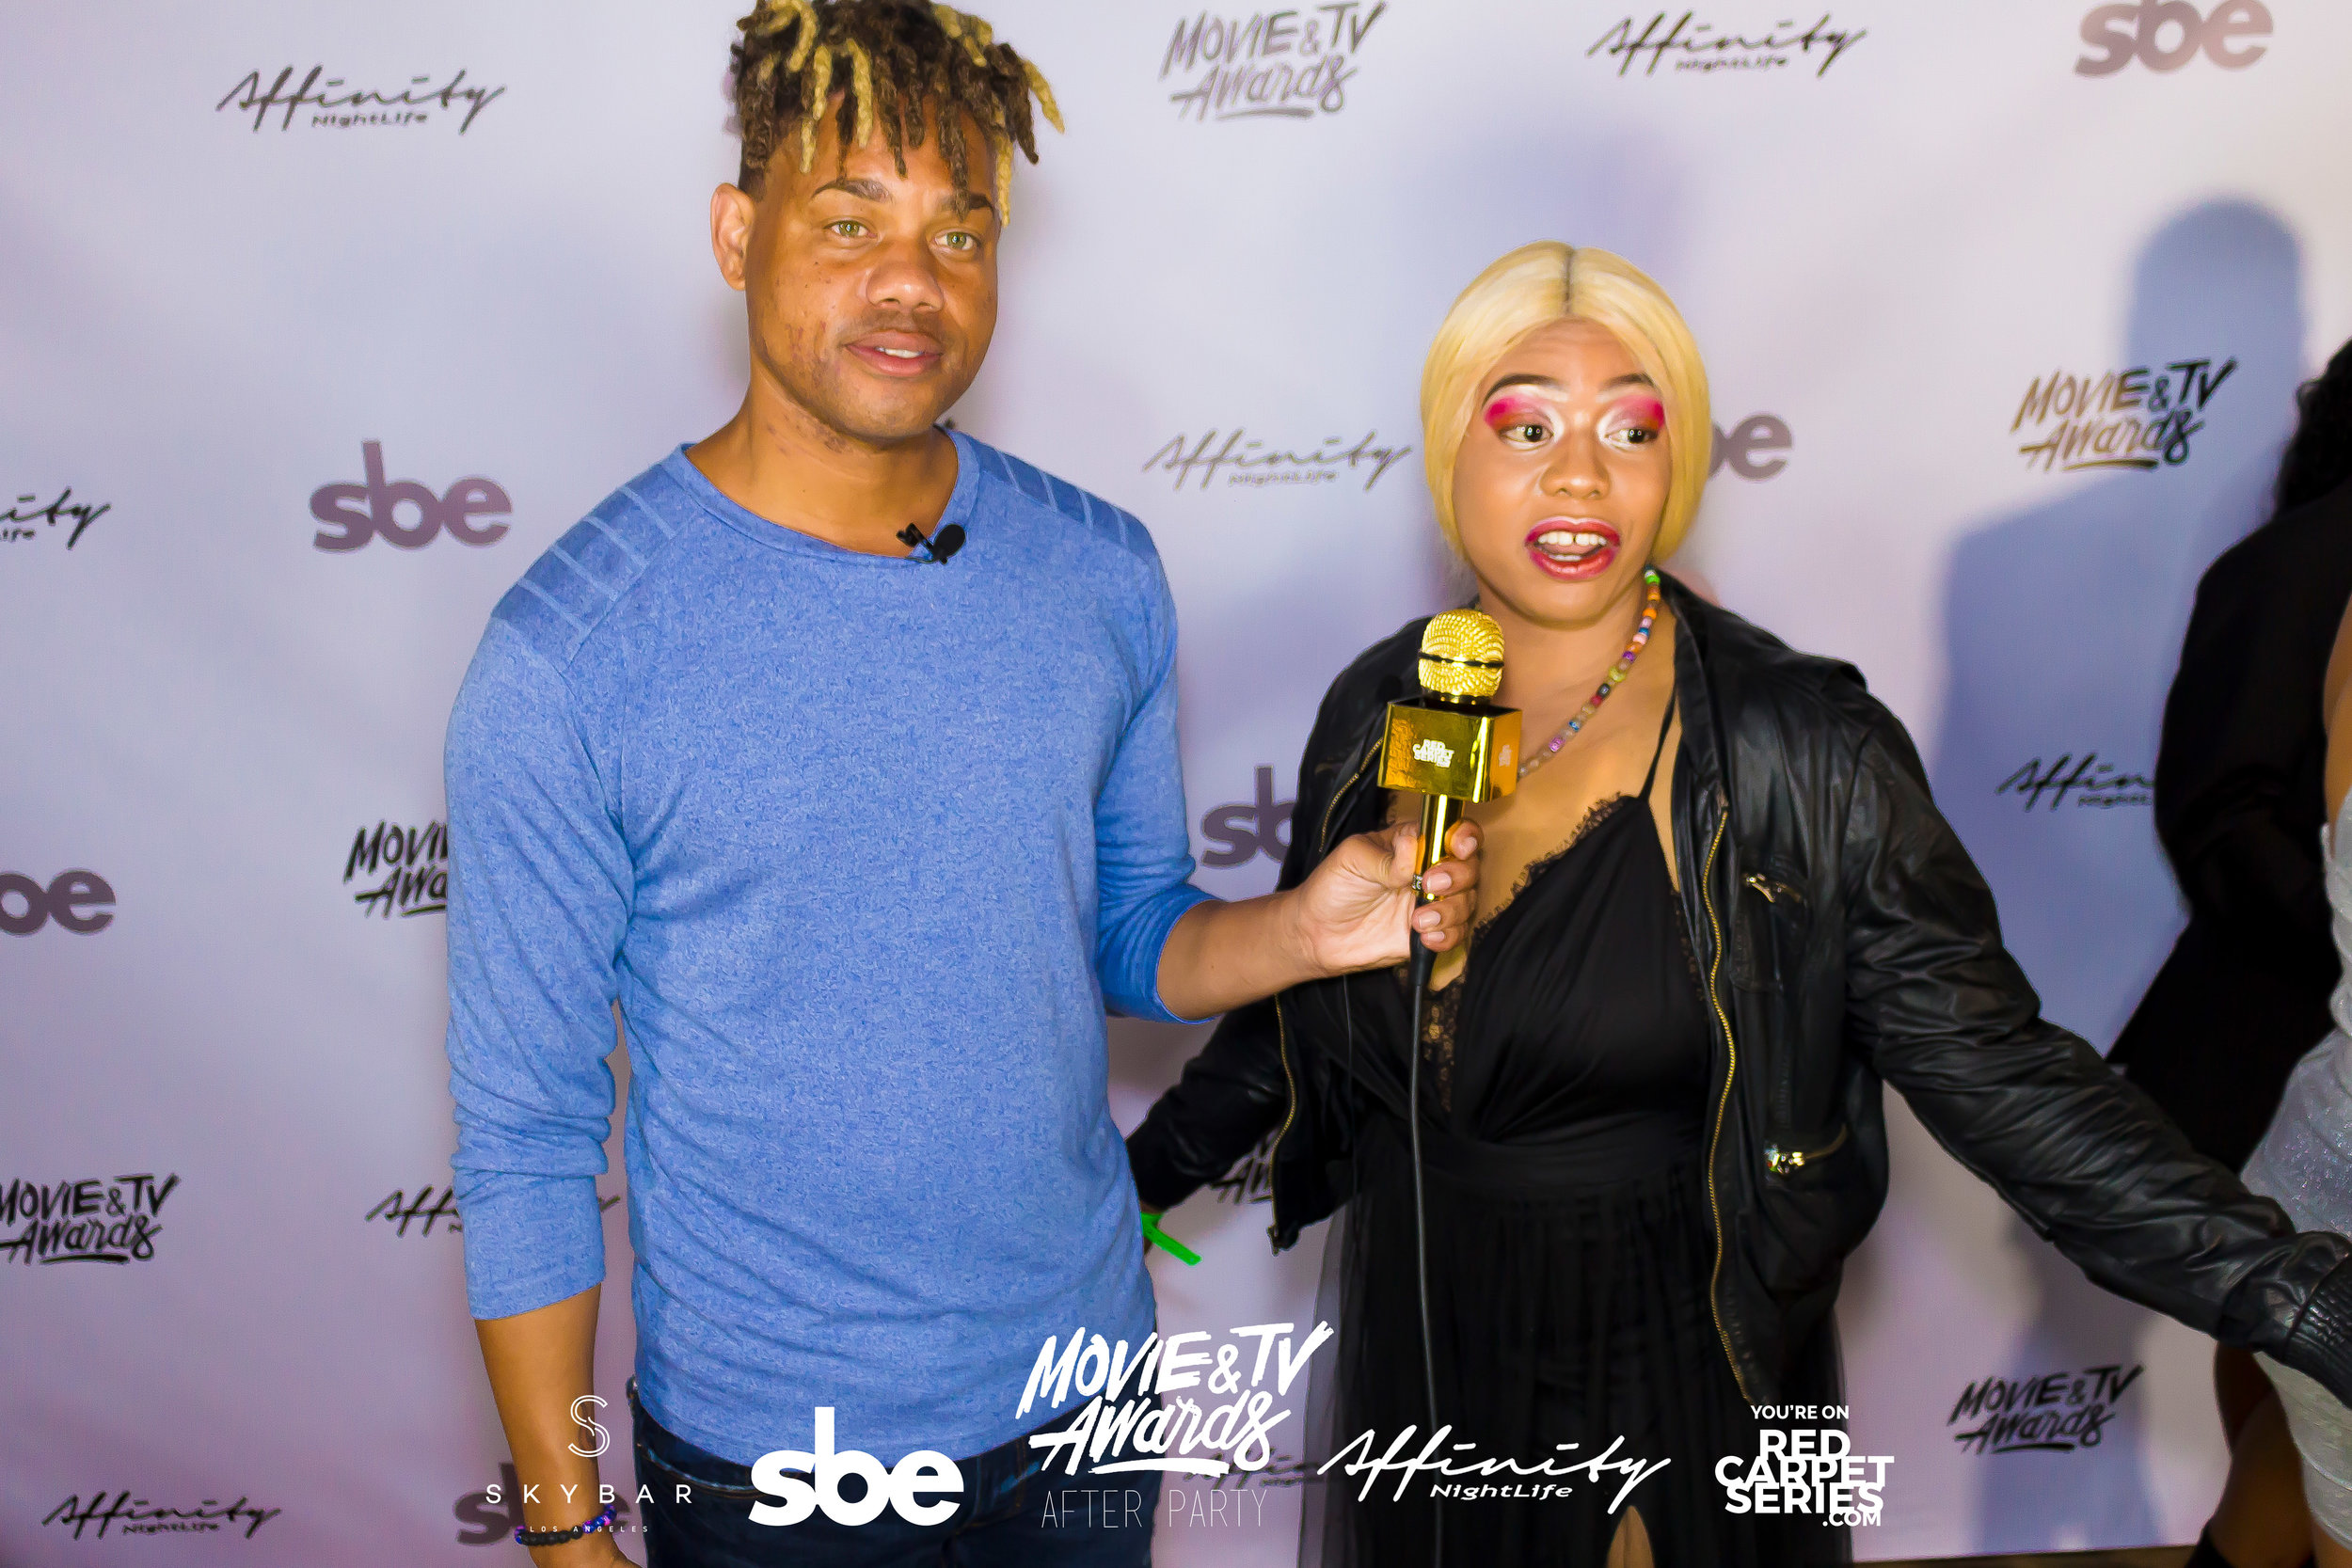 Affinity Nightlife MTV Movie & TV Awards After Party - Skybar at Mondrian - 06-15-19 - Vol. 1_74.jpg